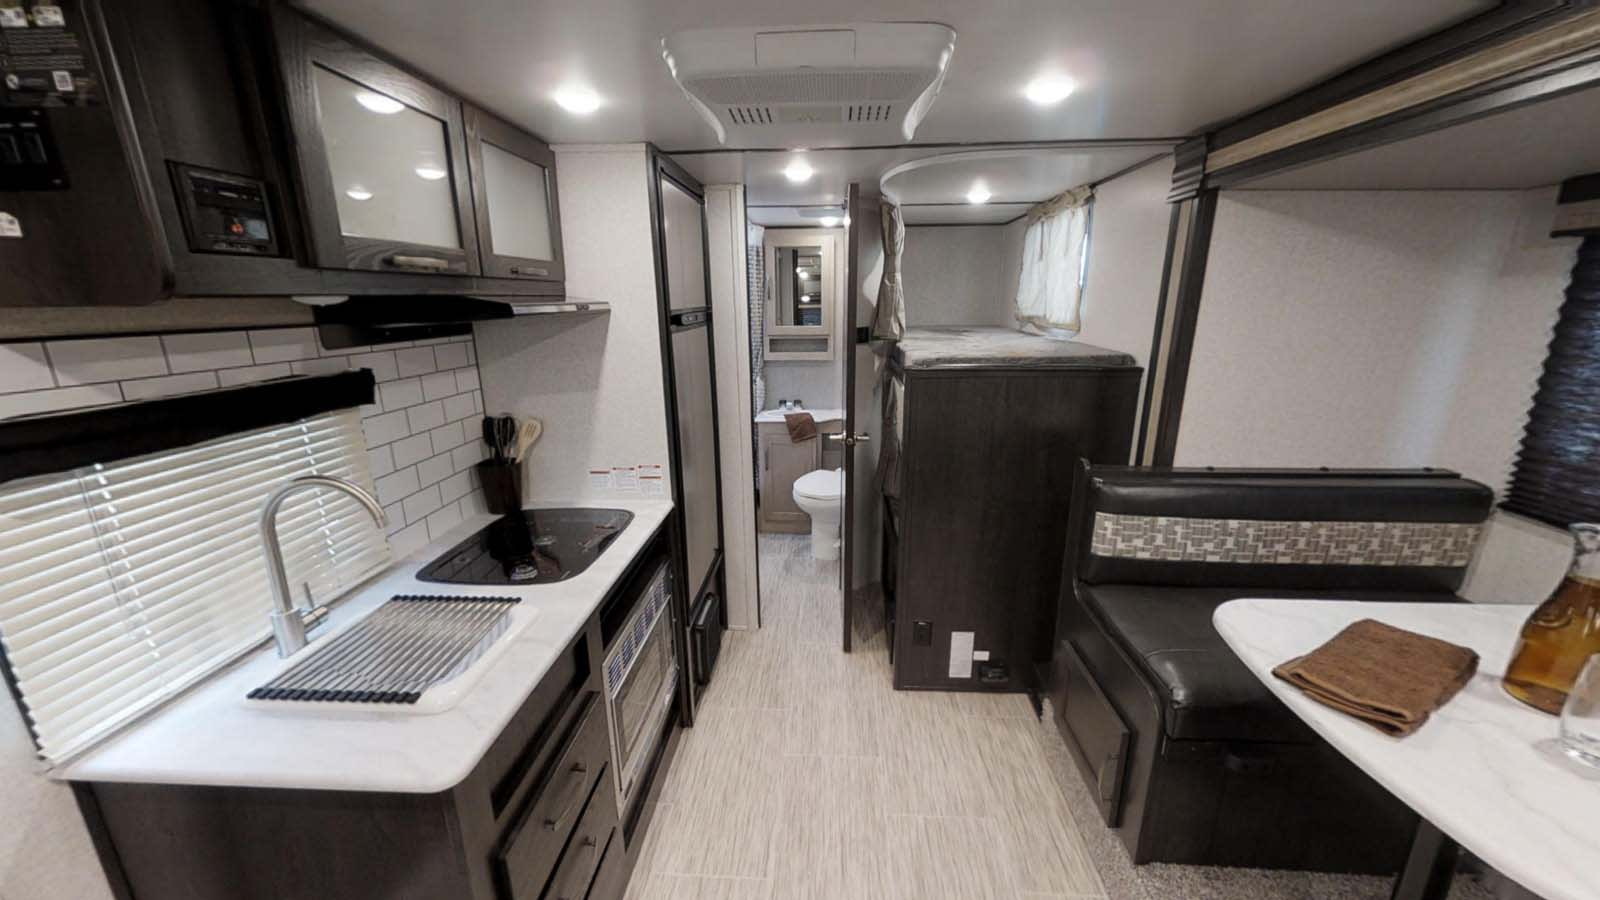 Slide out provides ample interior space in this lightweight camper!. Forest River Surveyor 2021